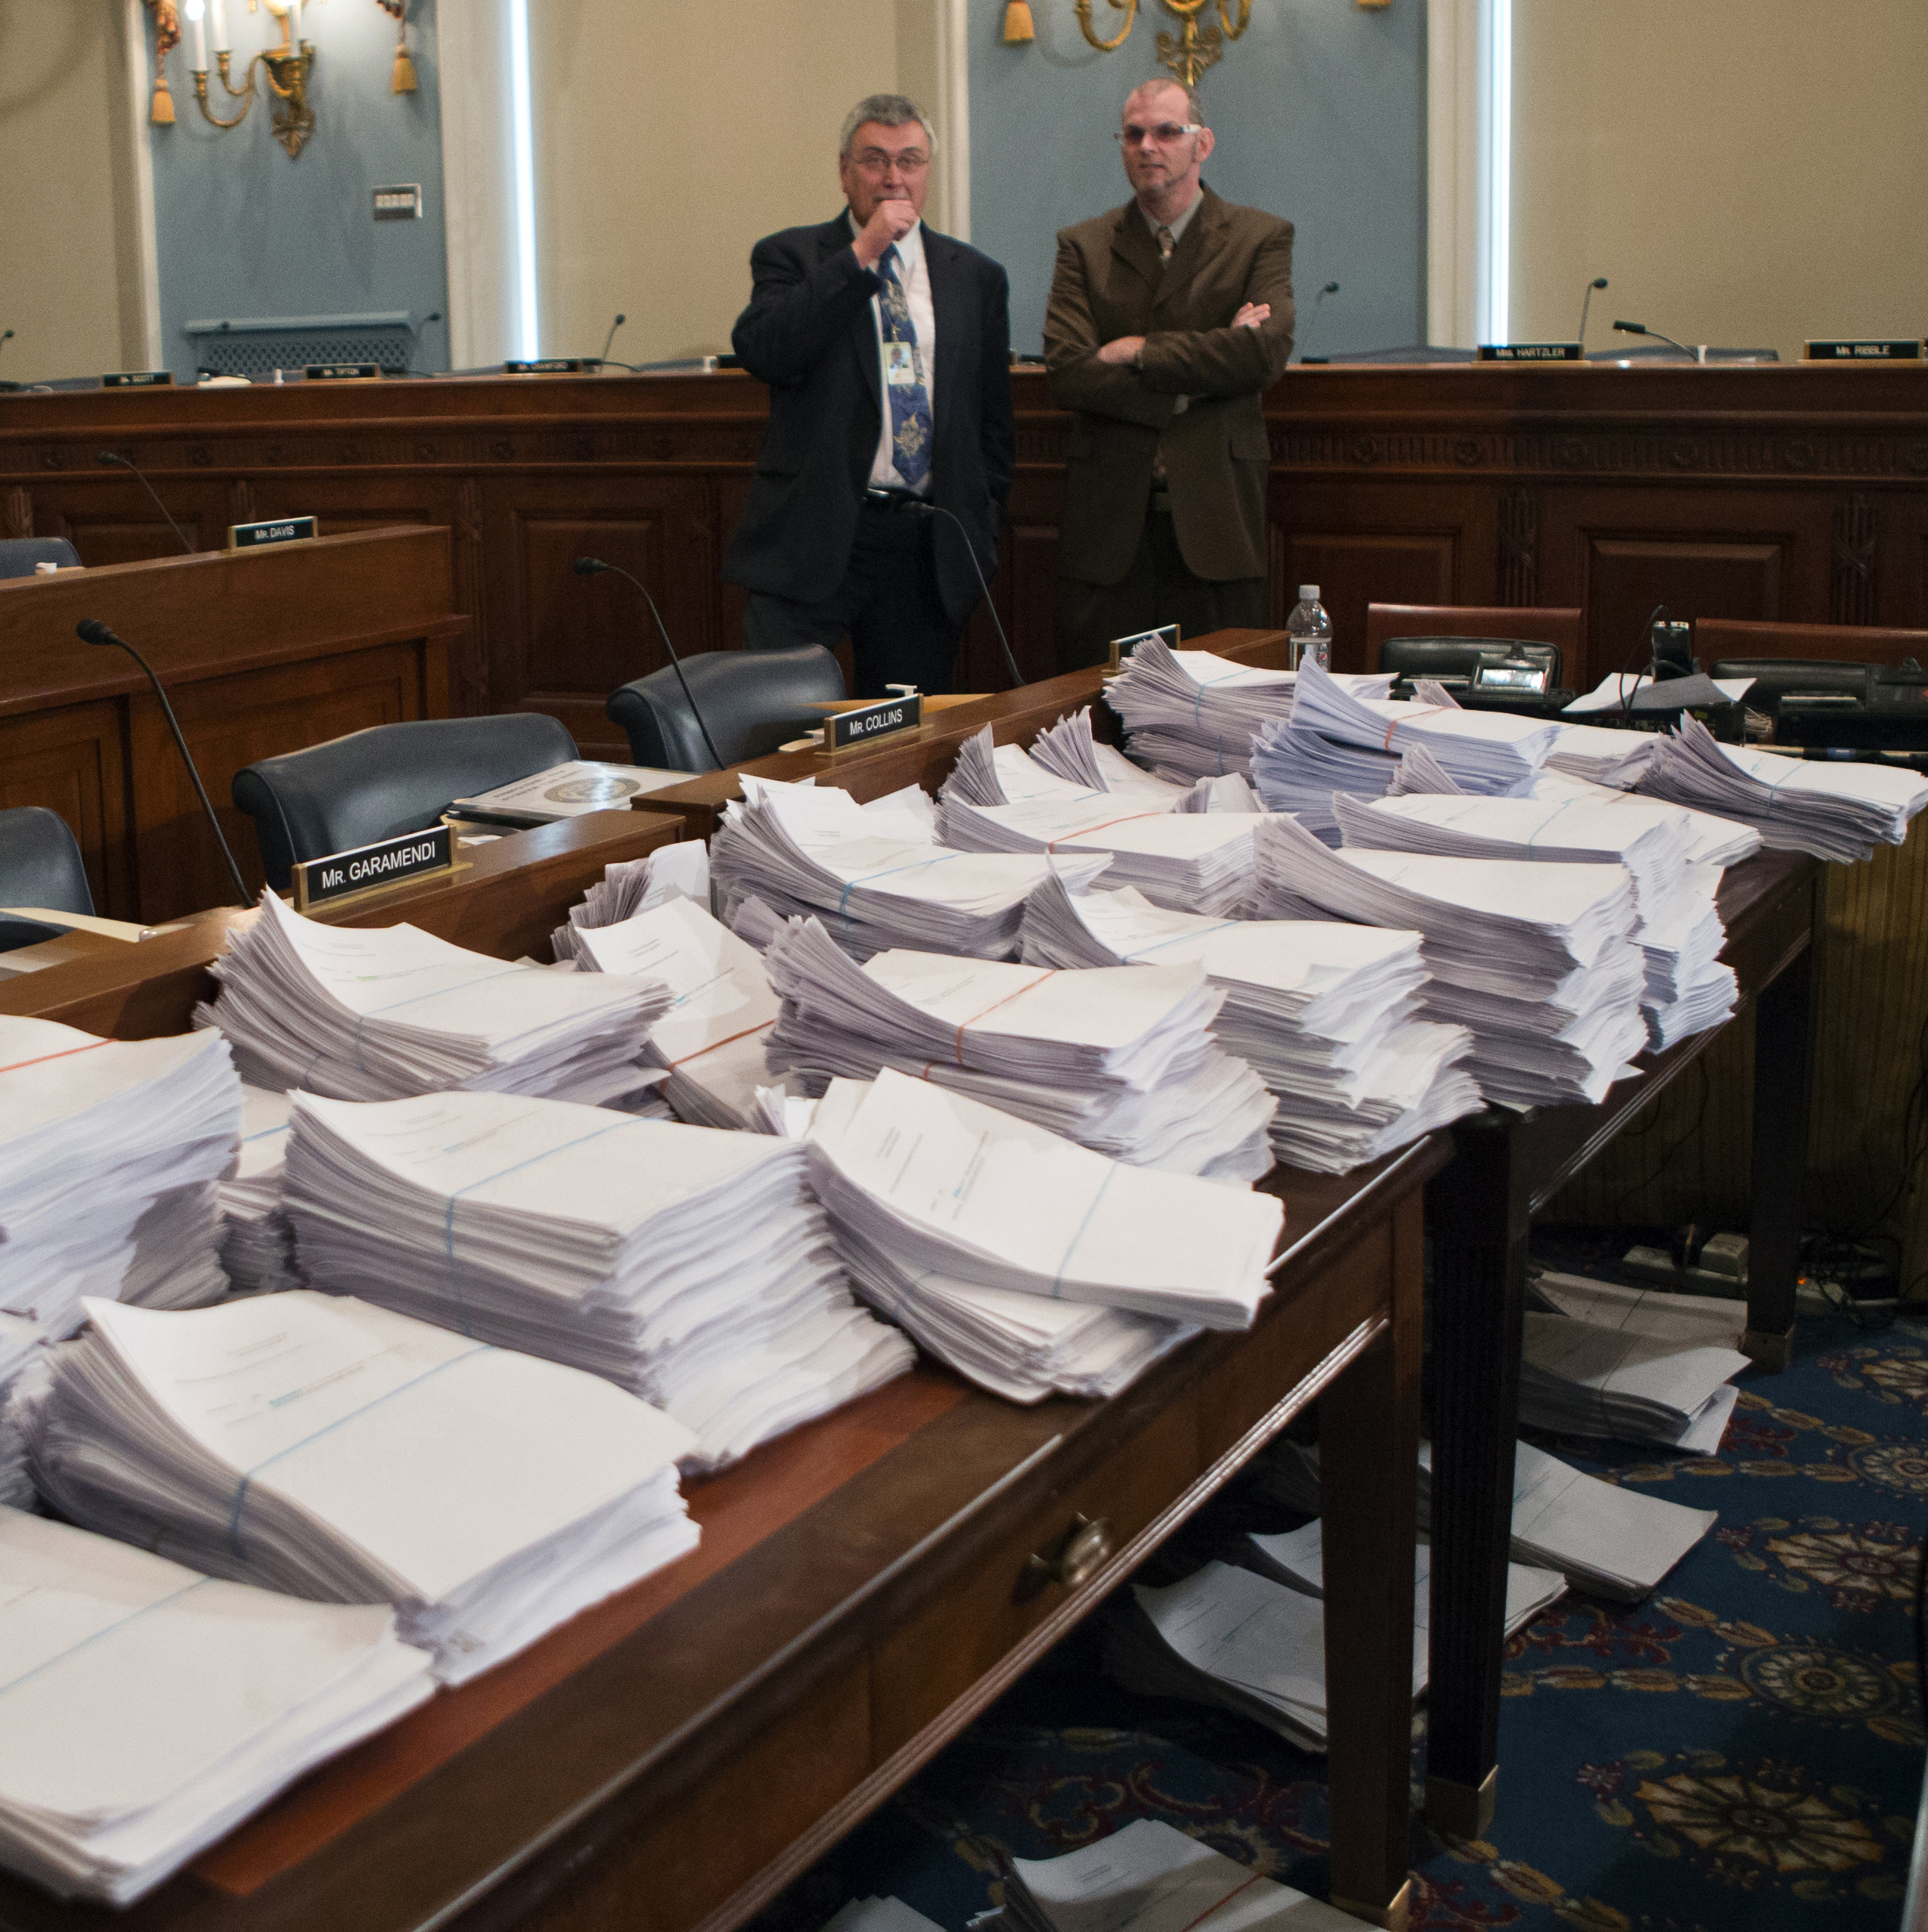 Stacks of paperwork awaited members of the House Agriculture Committee on Capitol Hill in May as they met to consider proposals to the 2013 Farm Bill.